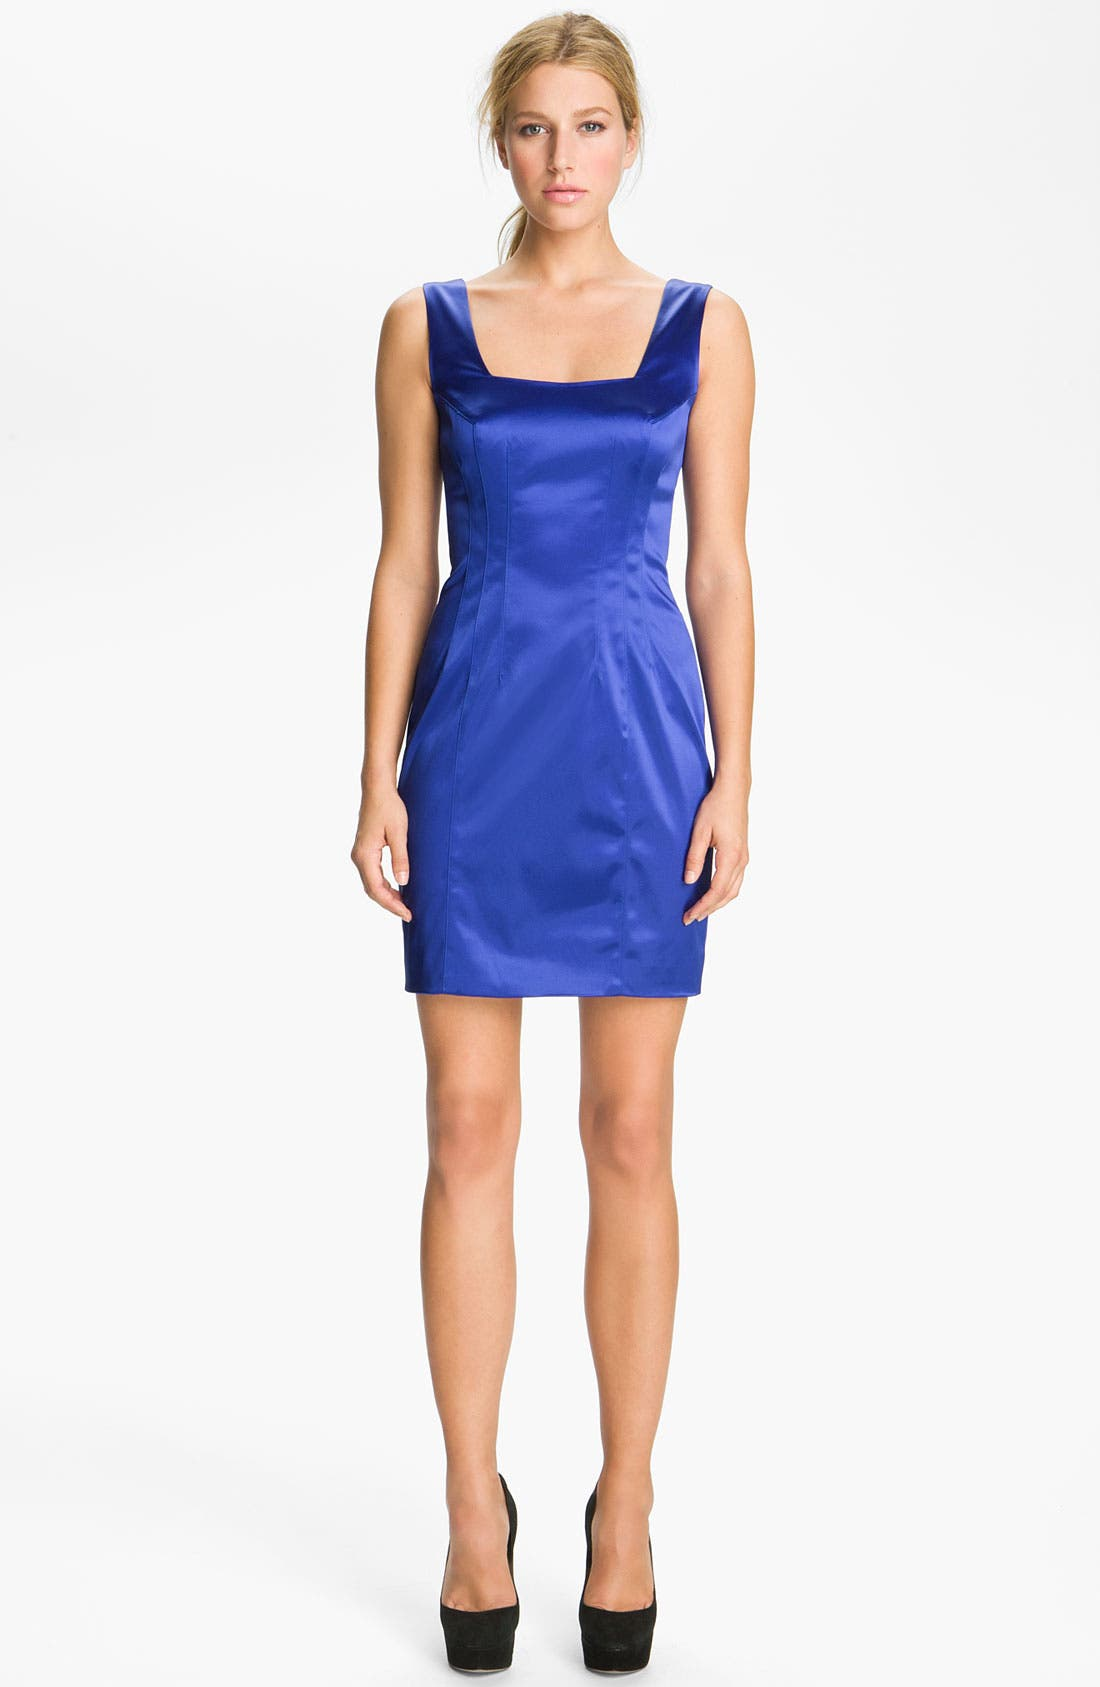 Alternate Image 1 Selected - Jay Godfrey 'Stone' Stretch Satin Minidress (Nordstrom Exclusive)